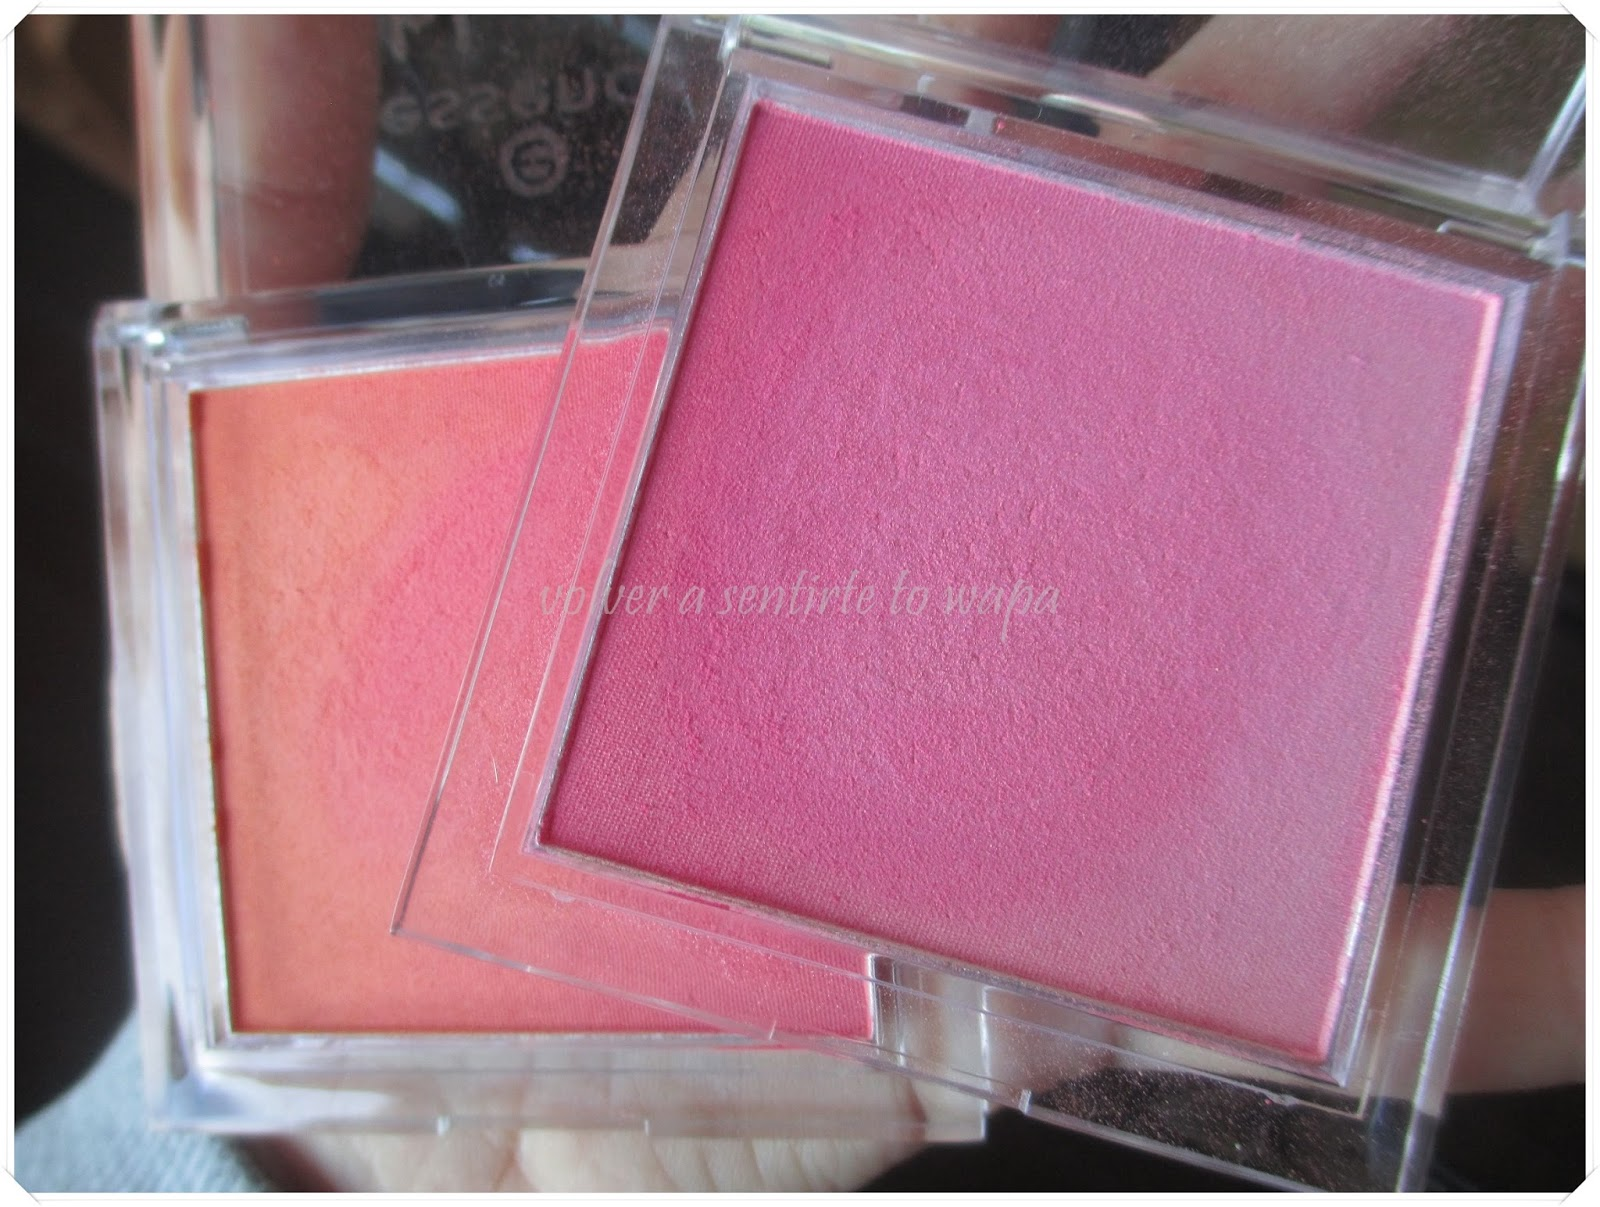 Coloretes de Essence - Blush up!